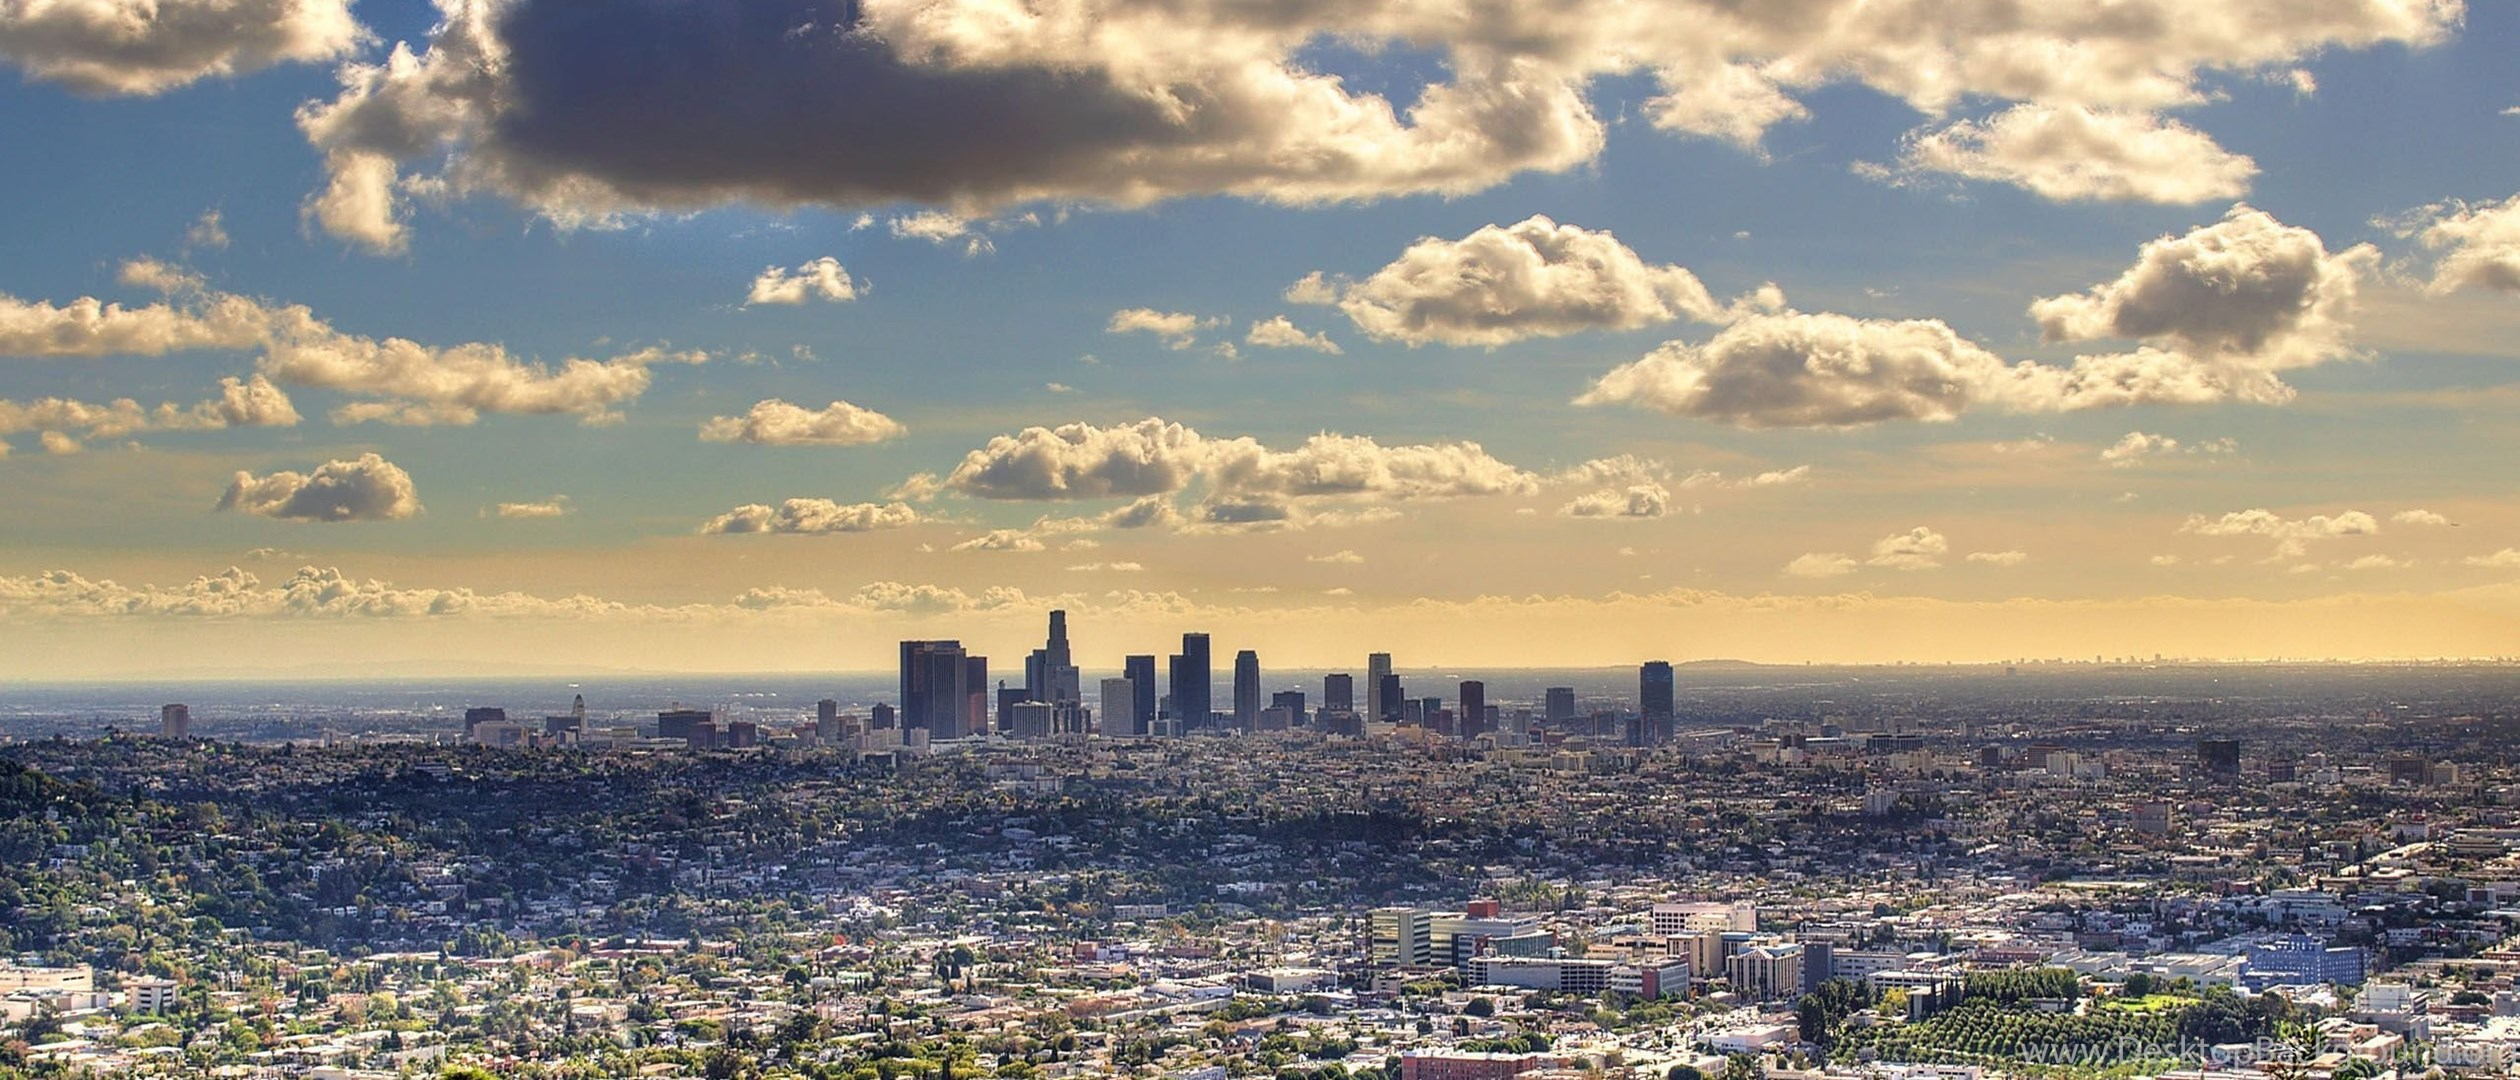 Los Angeles Desktop Wallpaper,Los Angeles Images, New